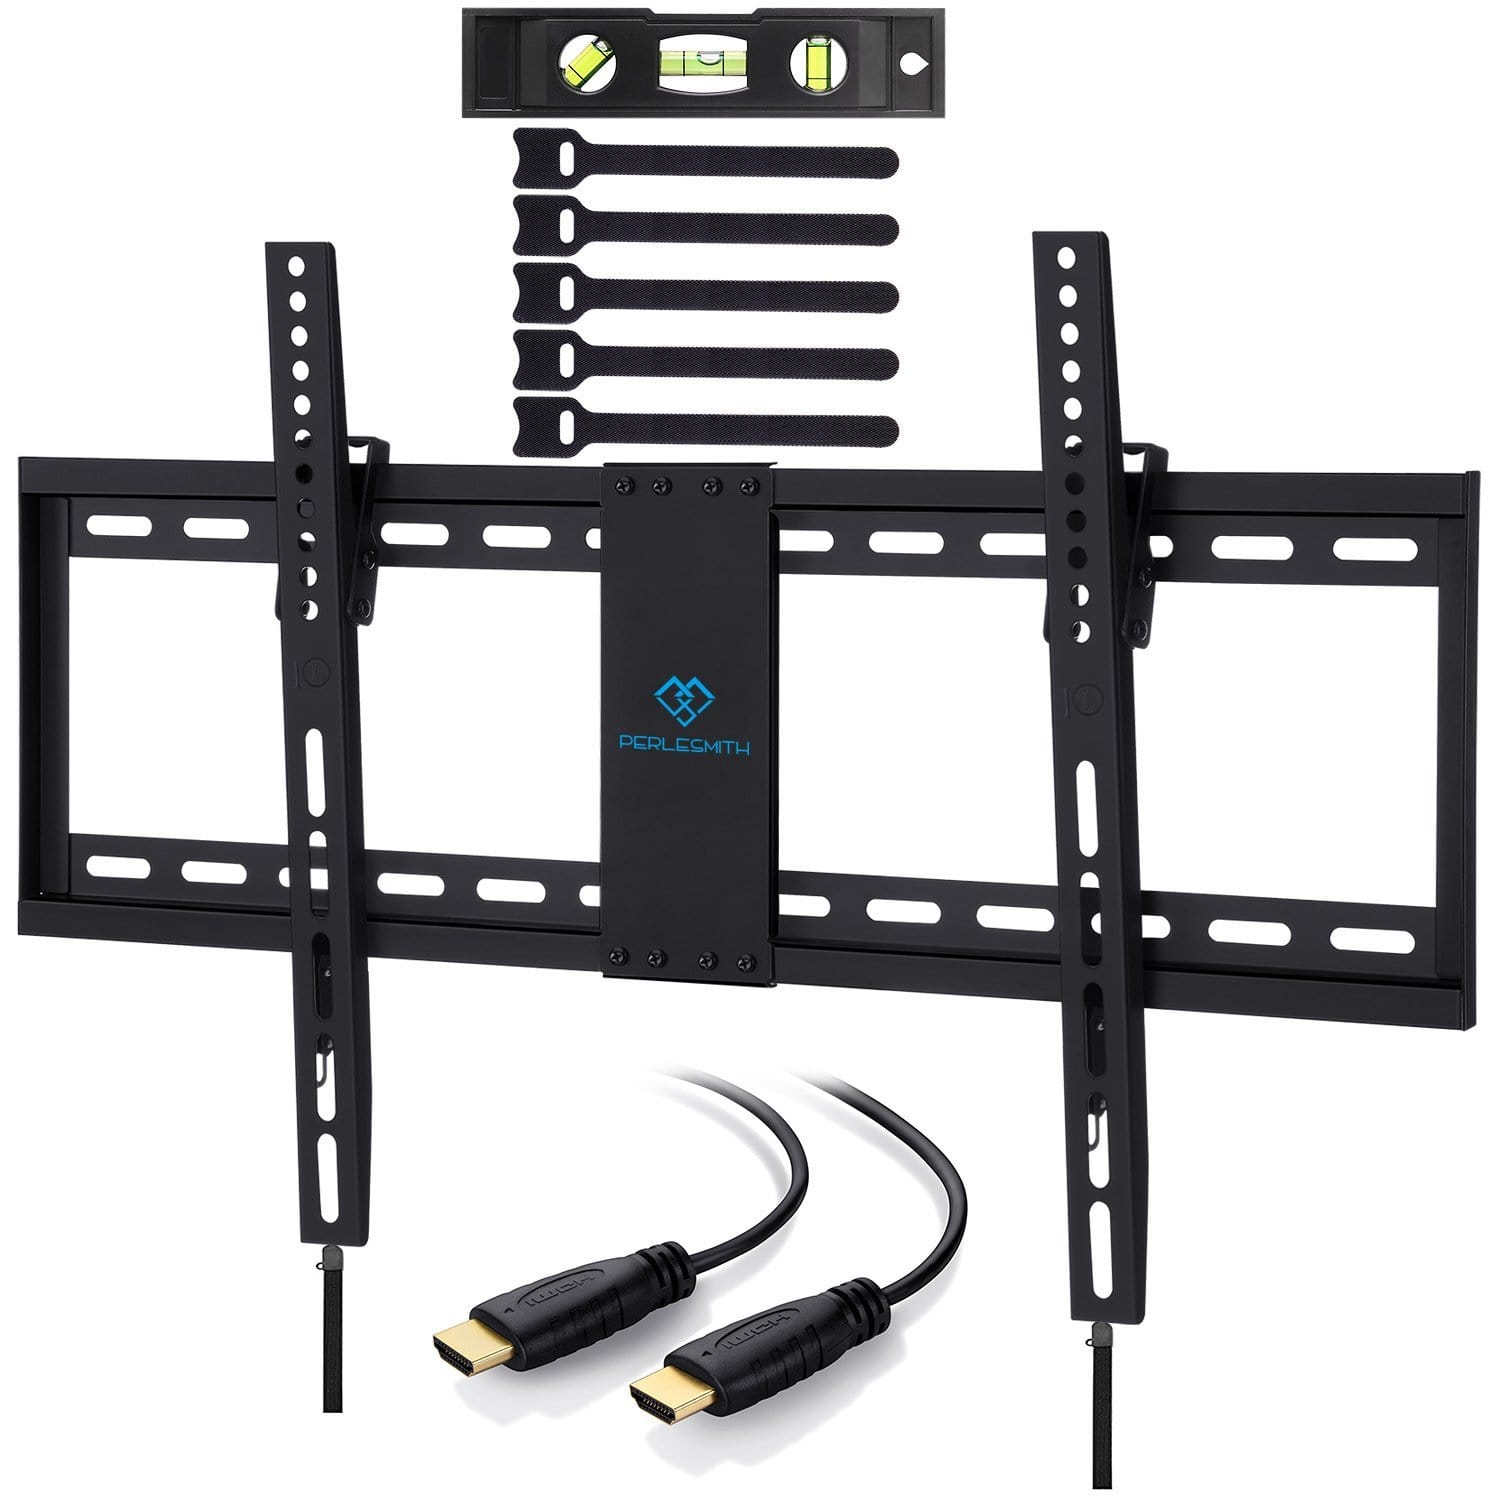 Tilt Low Profile TV Wall Mount Bracket for Most 32-70 inch LED, up to132lbs 600 x 400 $11.99